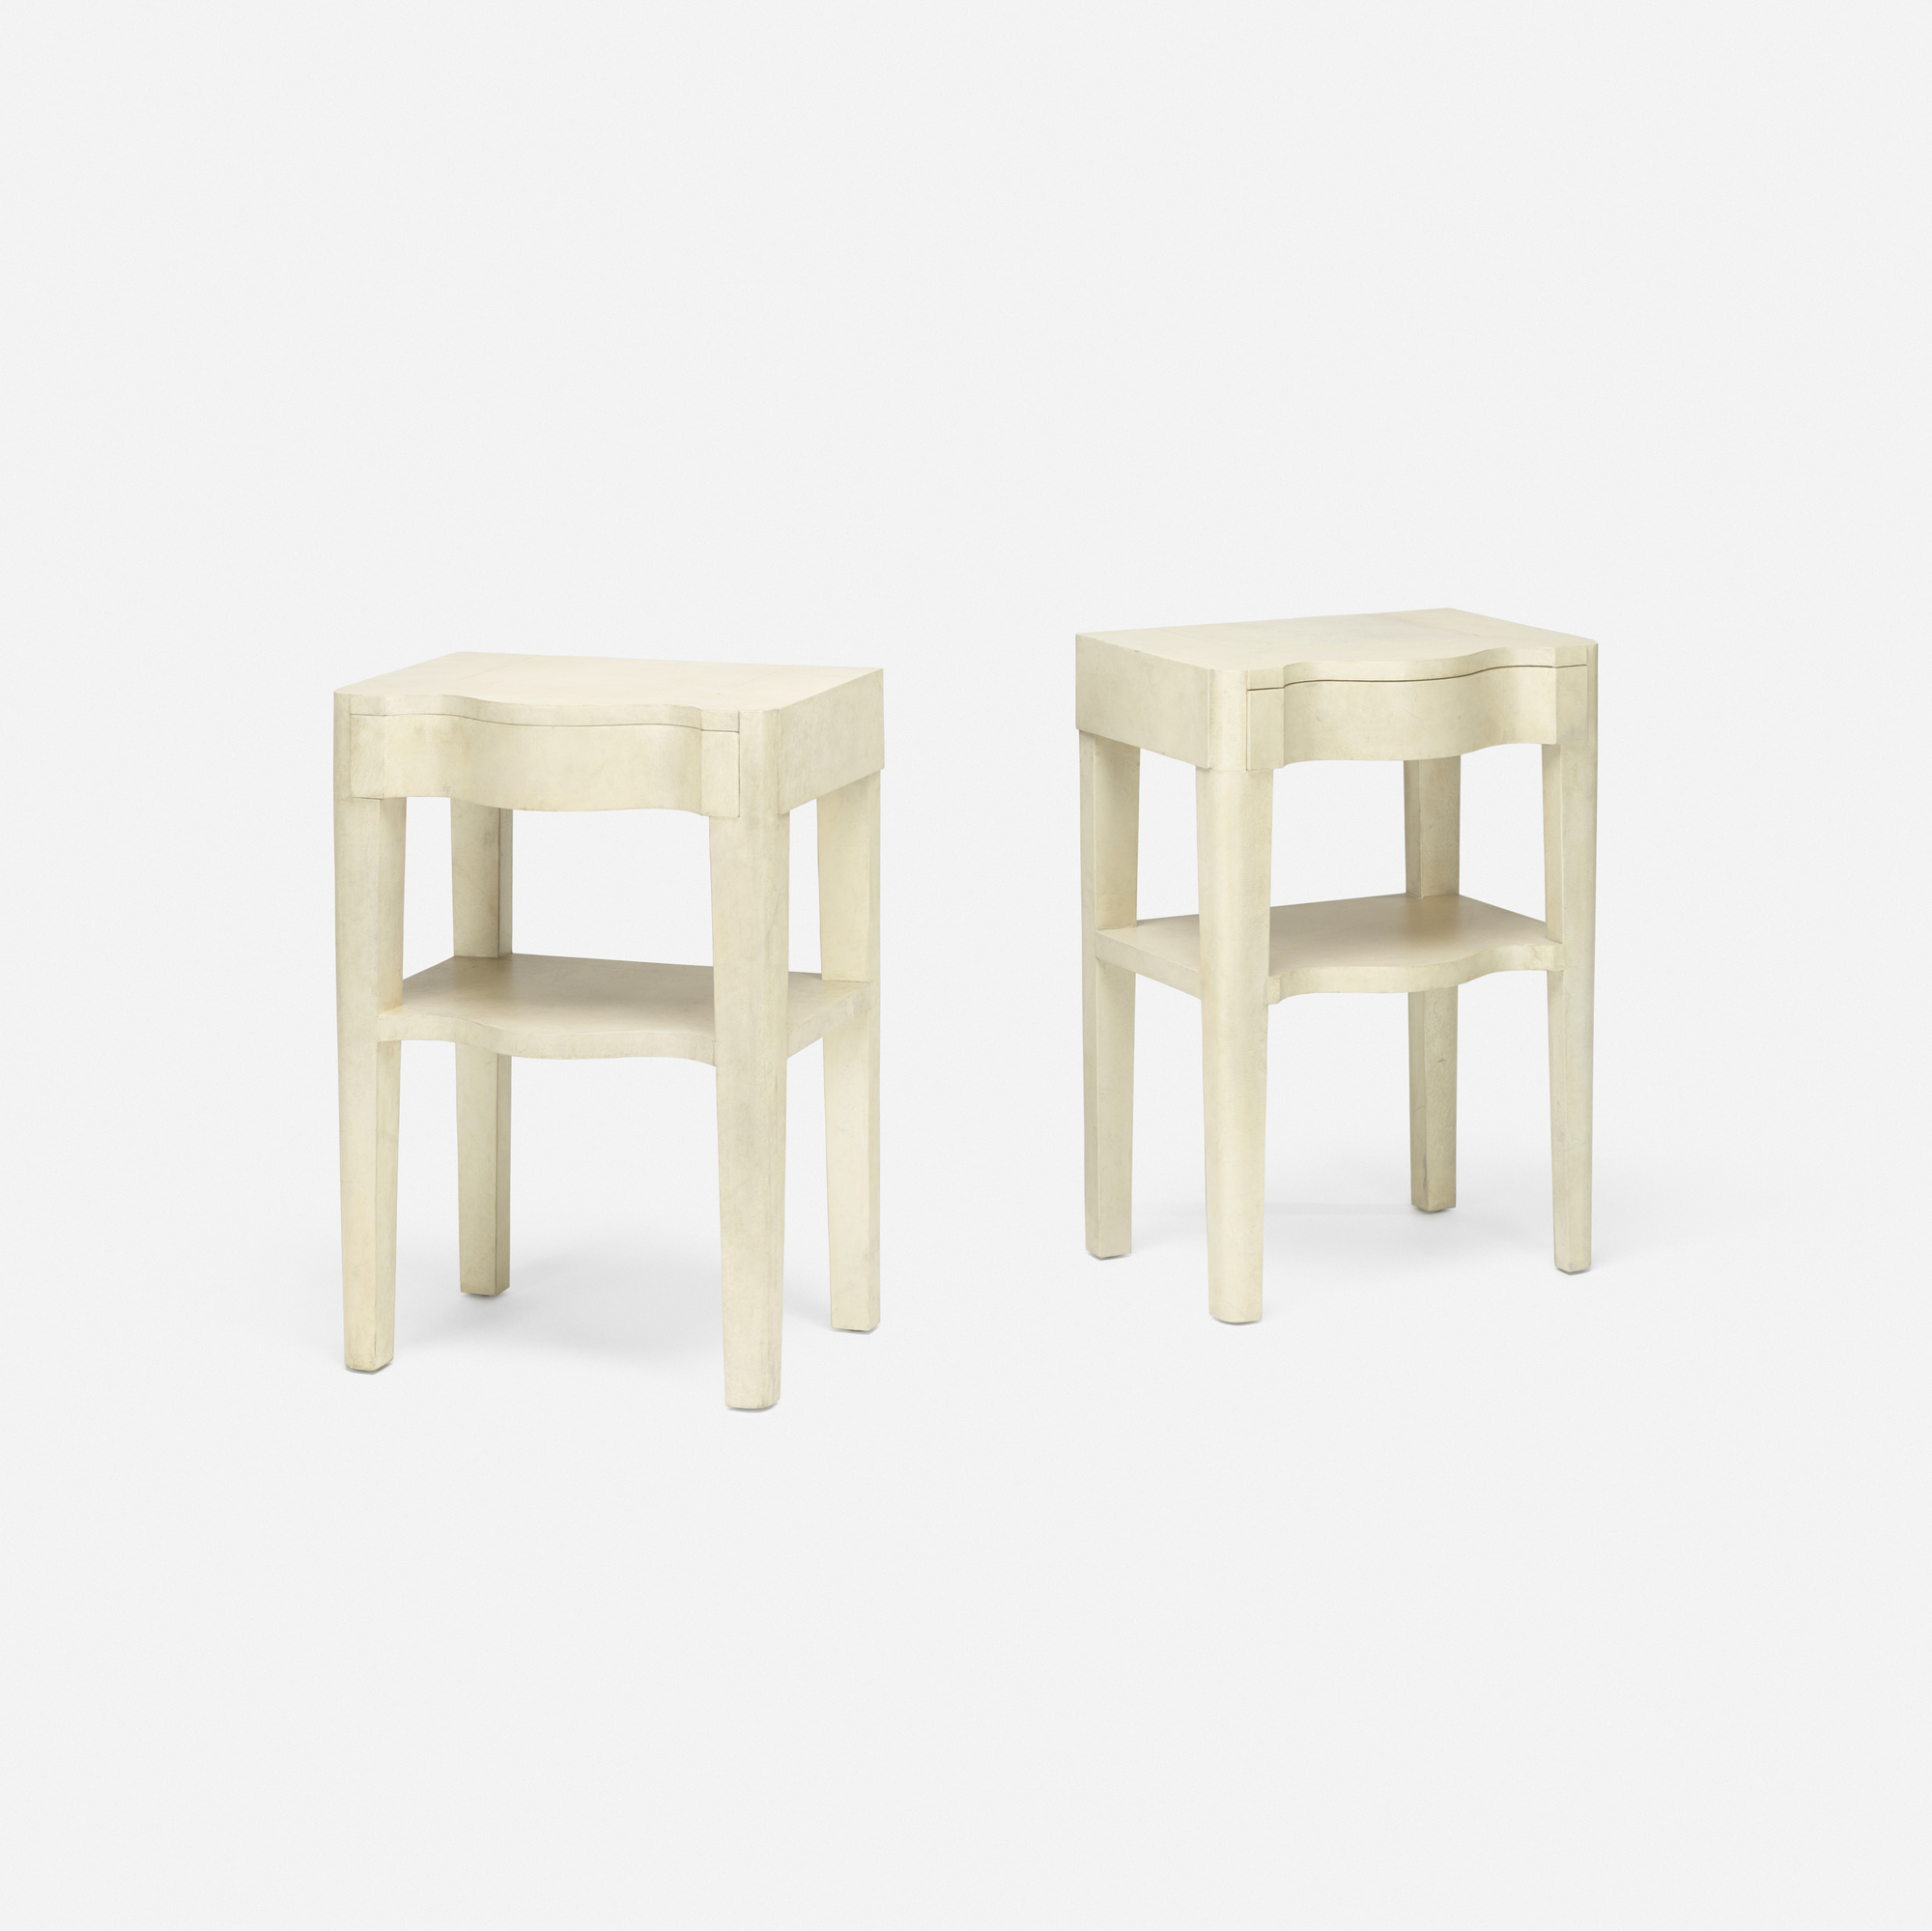 377: Samuel Marx / nightstands, pair (2 of 2)